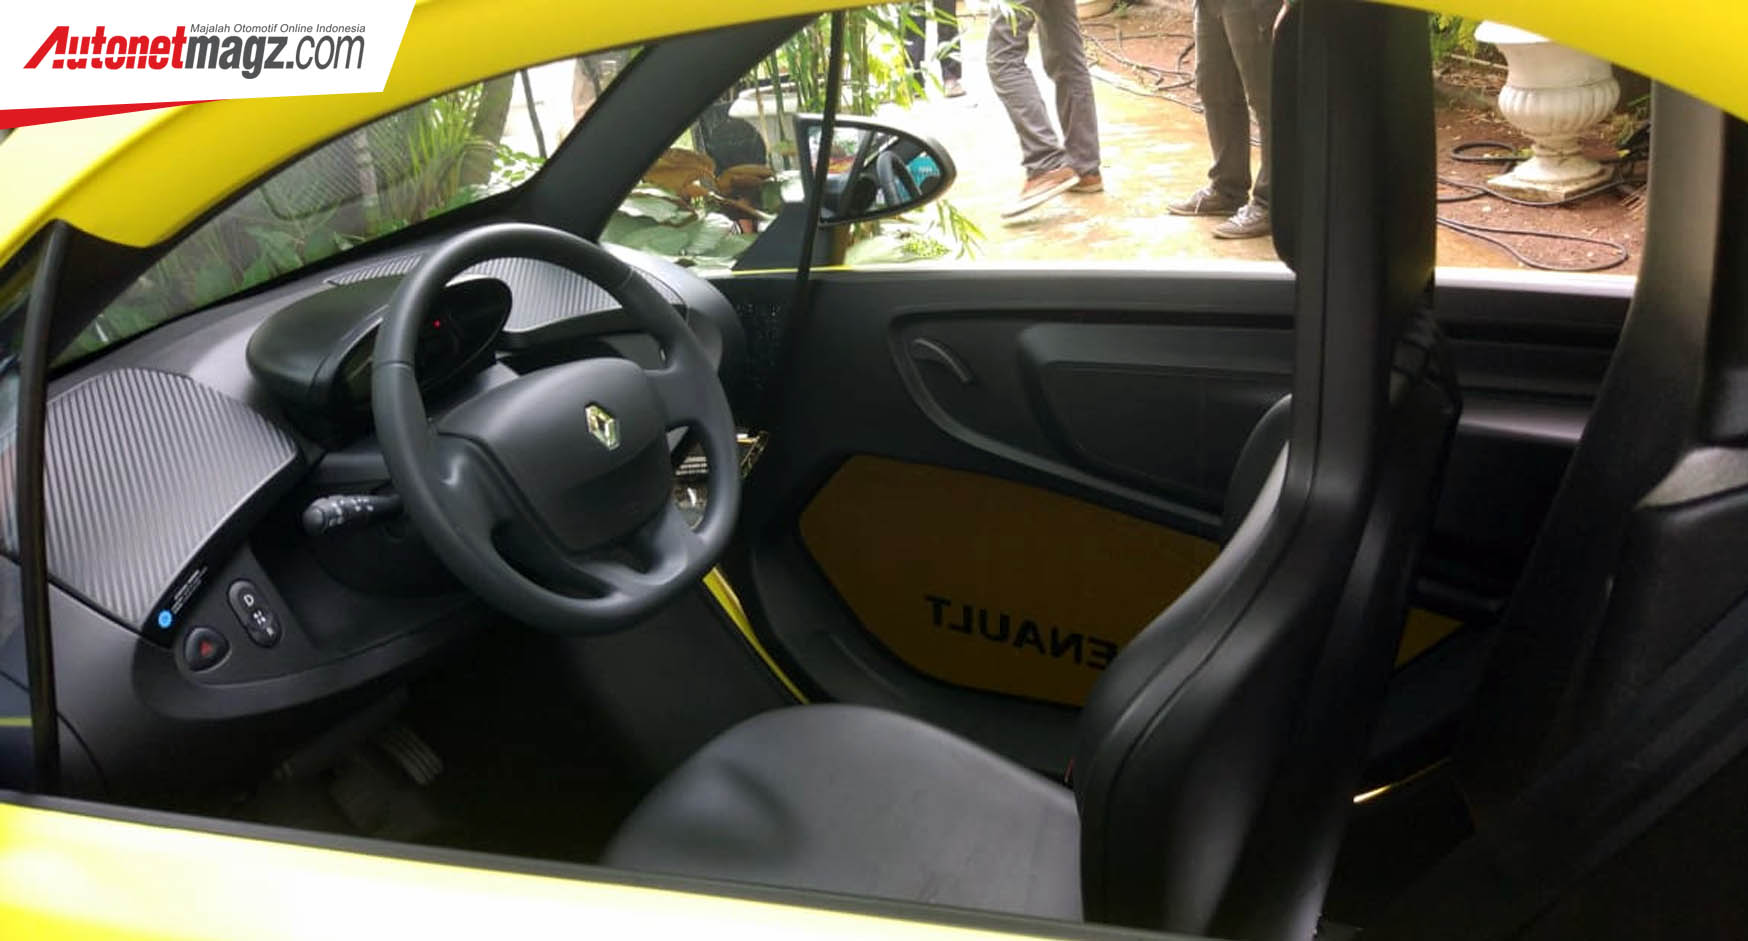 Renault Twizy Indonesia Interior – AutonetMagz :: Review